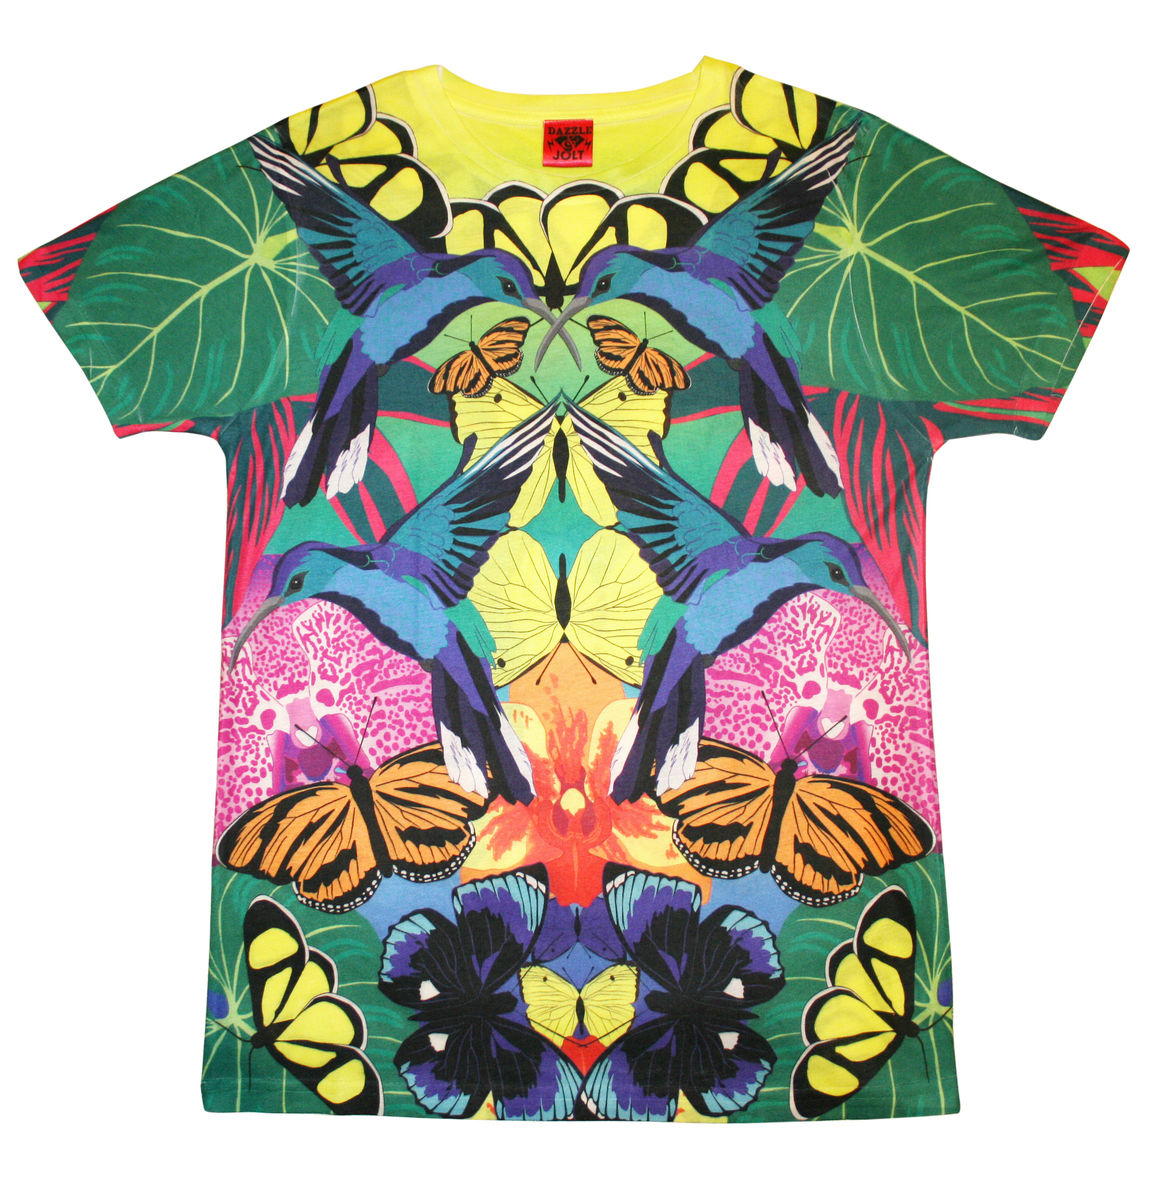 Botanico T-Shirt - product images  of